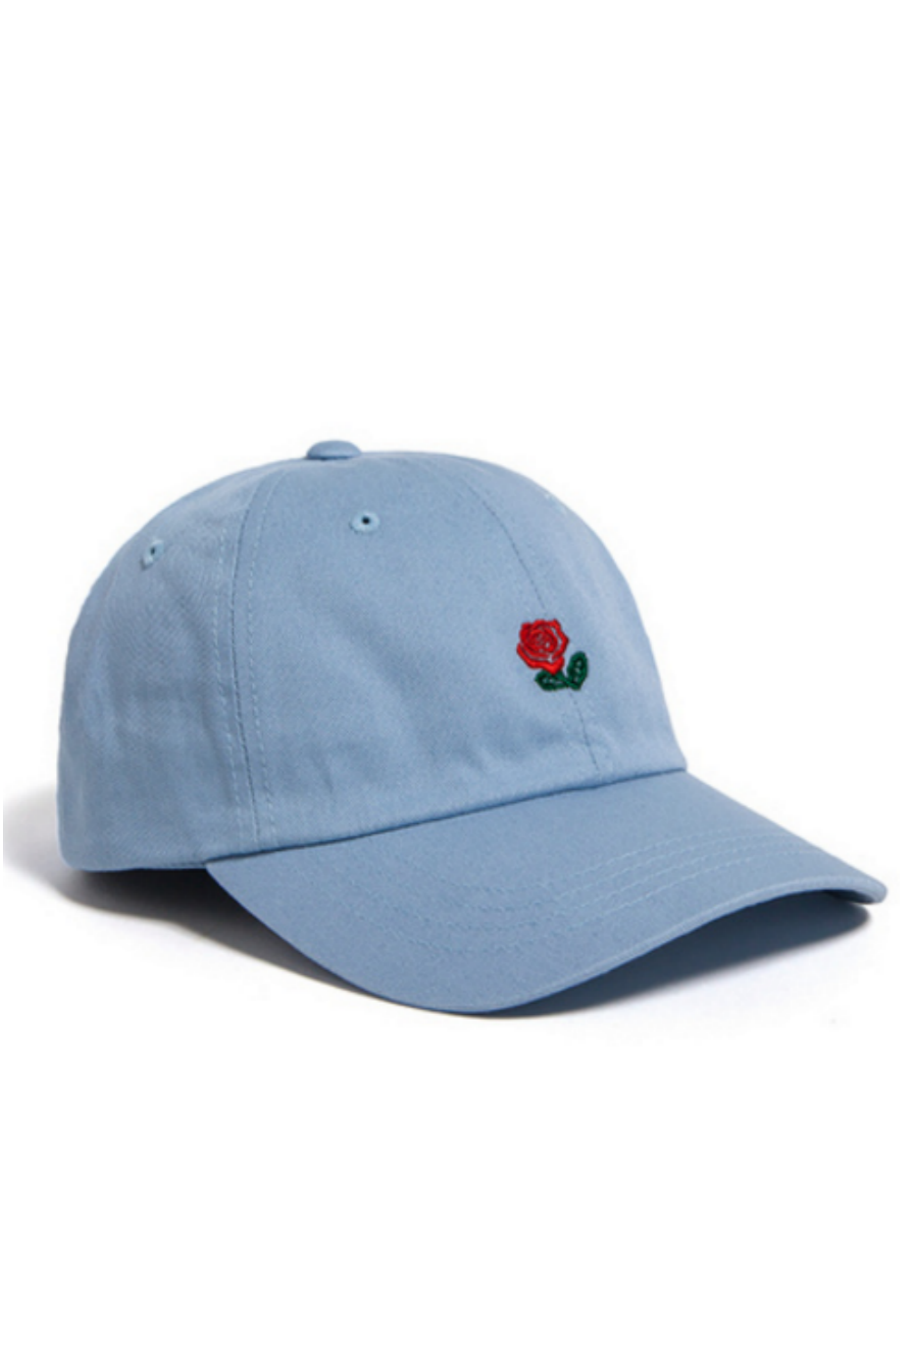 7361ac0a9bc Rose Embroidered Hat In Blue